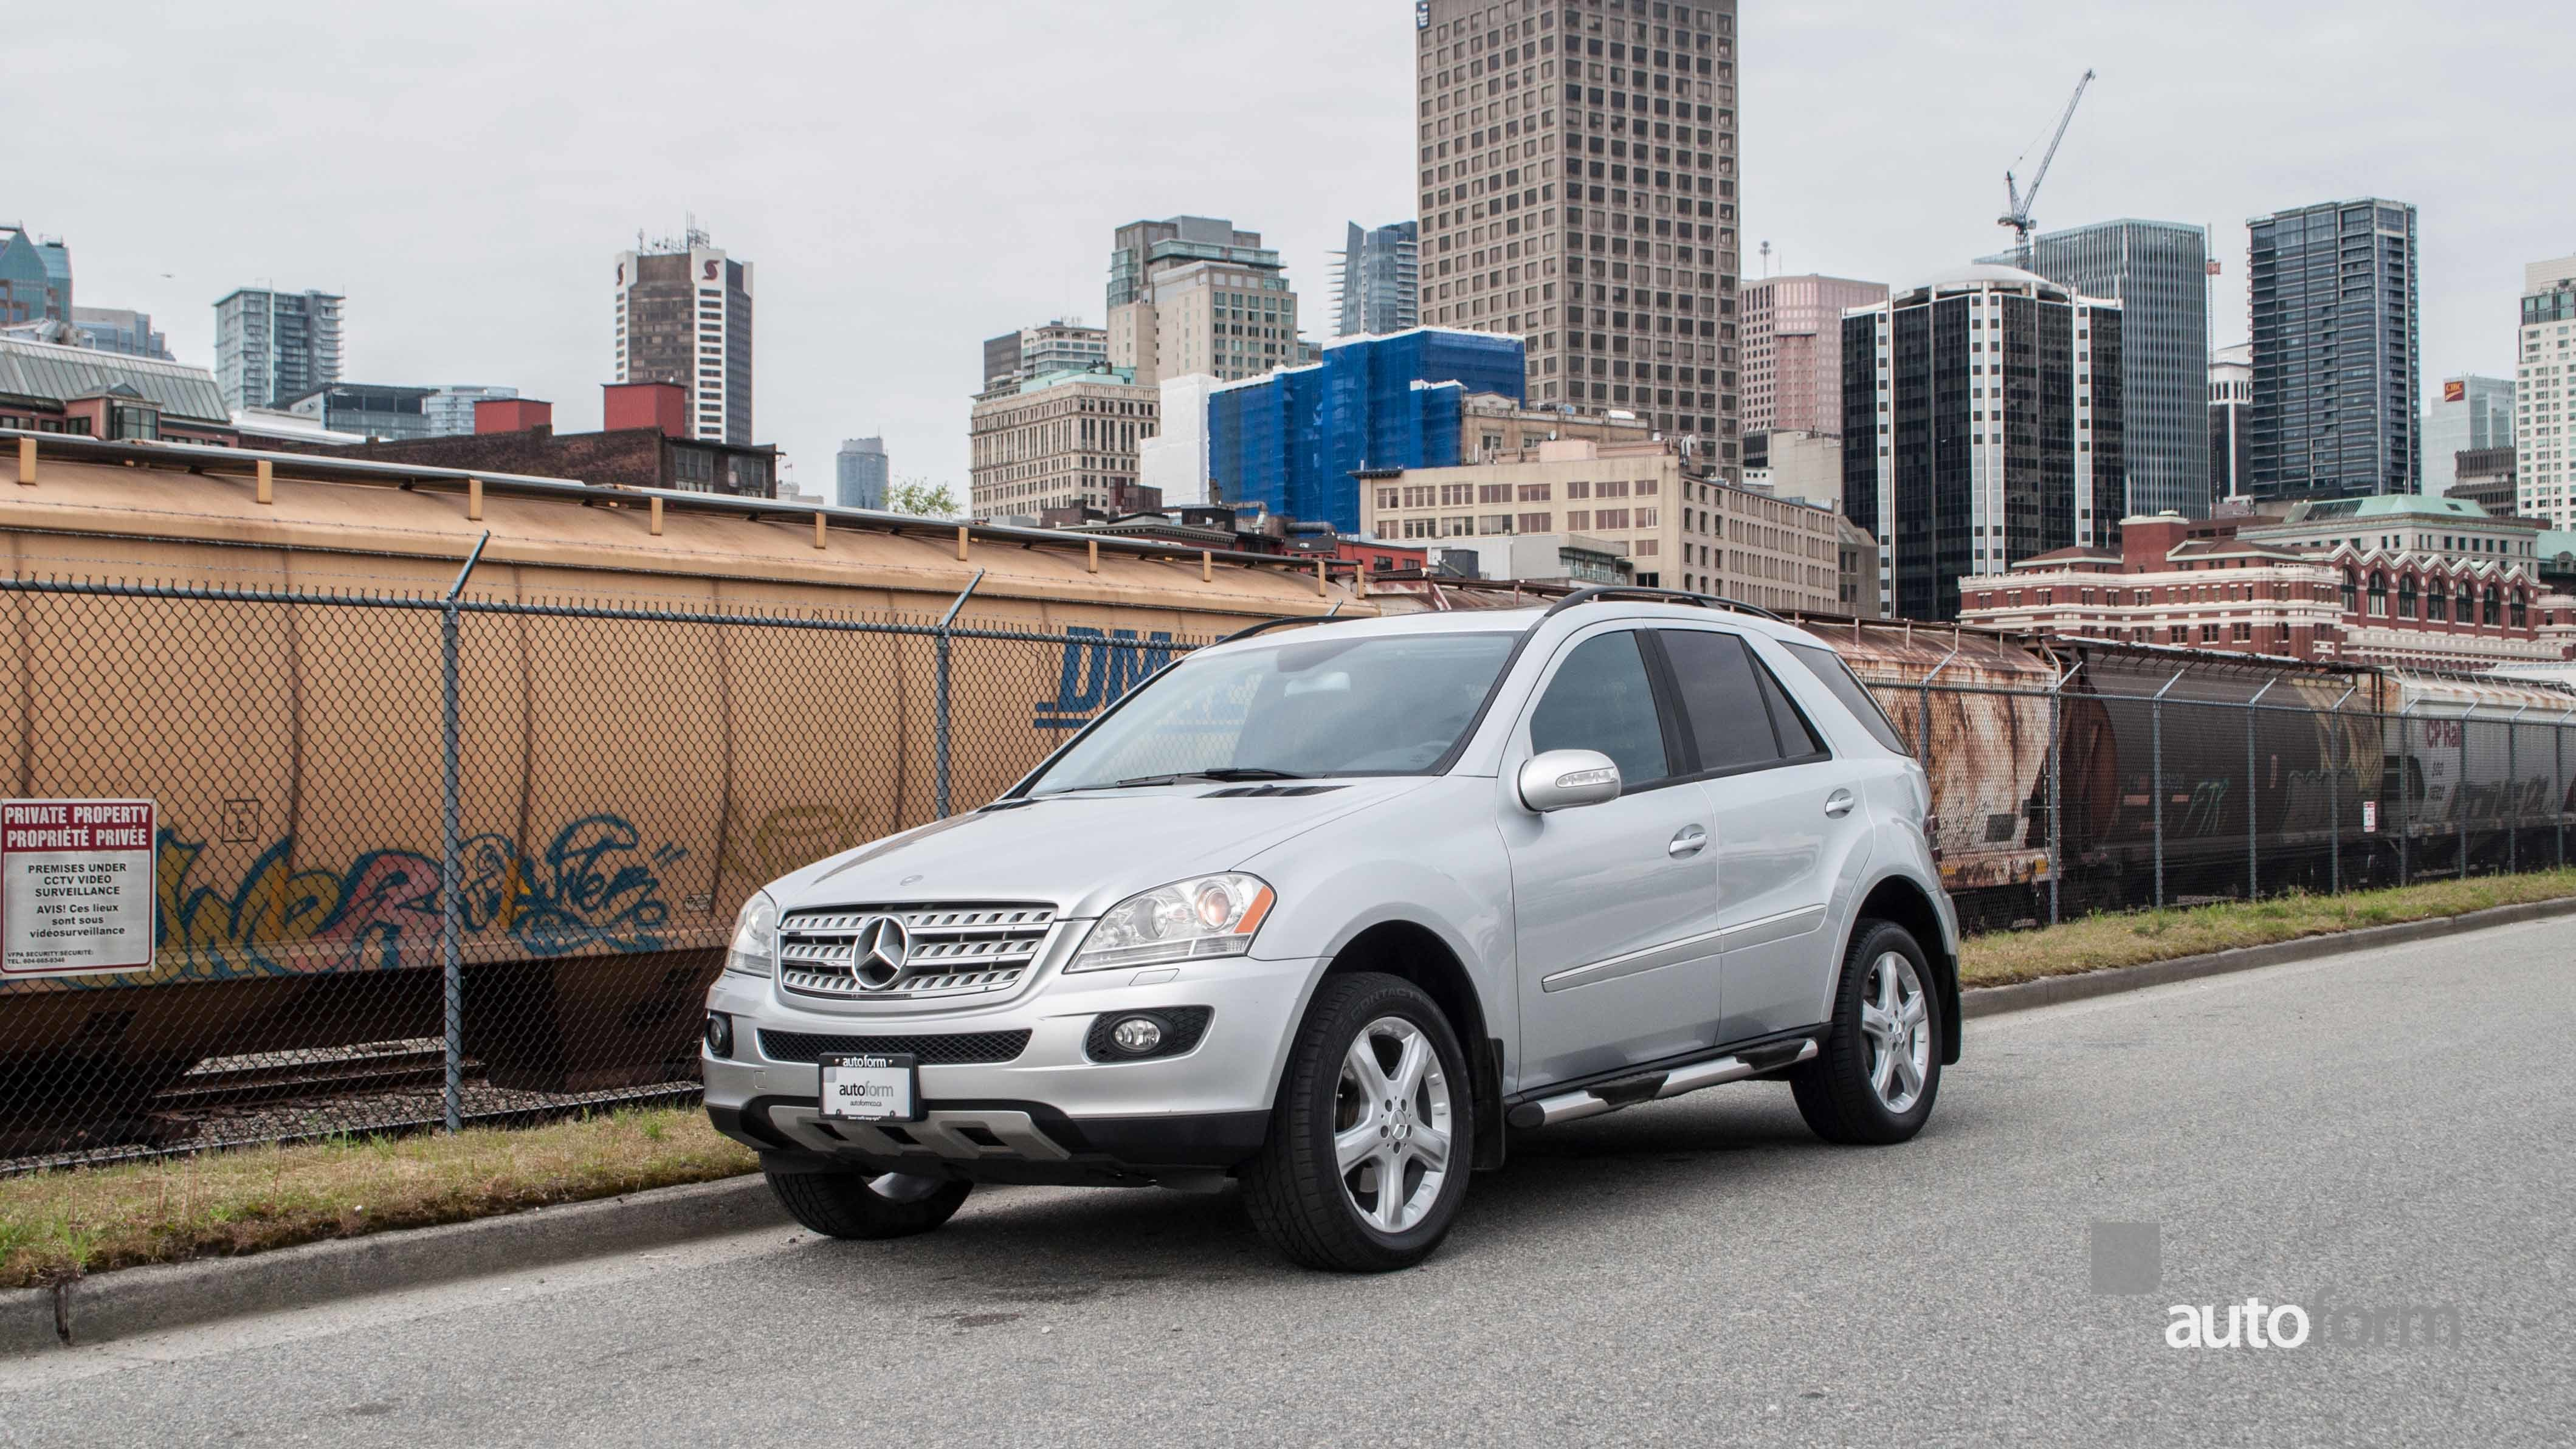 for sale t news suv passenger benz gls grand mercedes sell won in the diesel source edition us cars wont roadshow